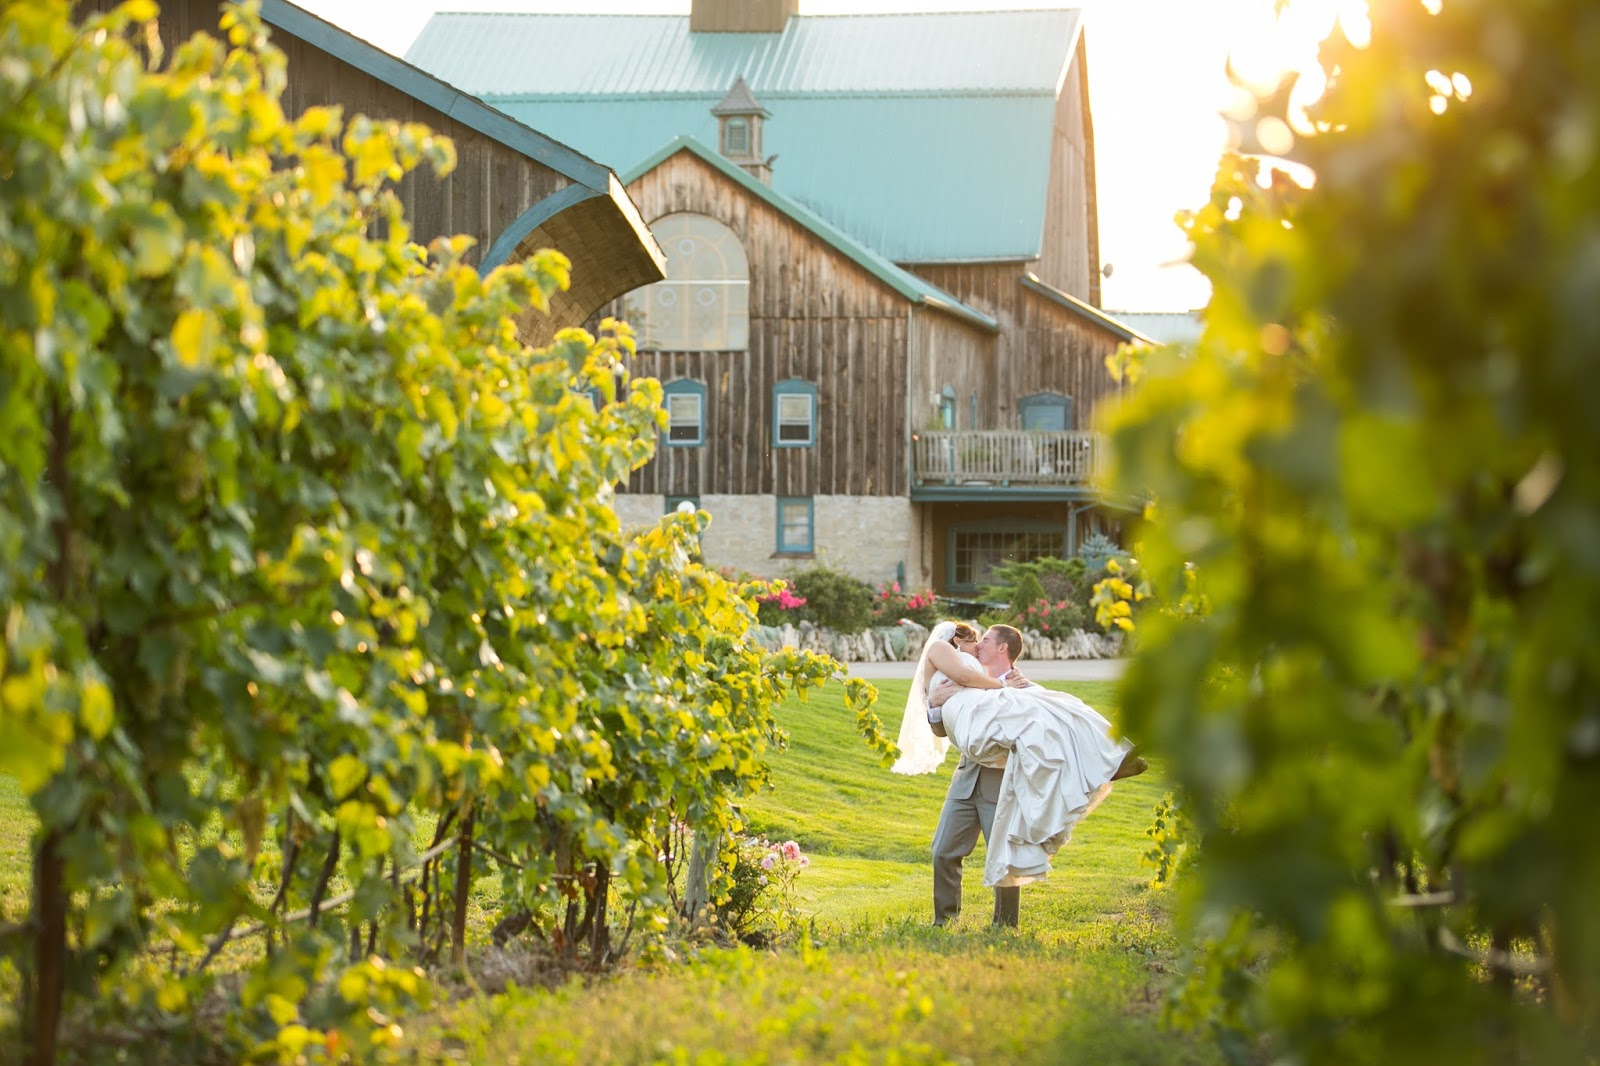 Winery outdoor wedding photos // the-lifestyle-project.com